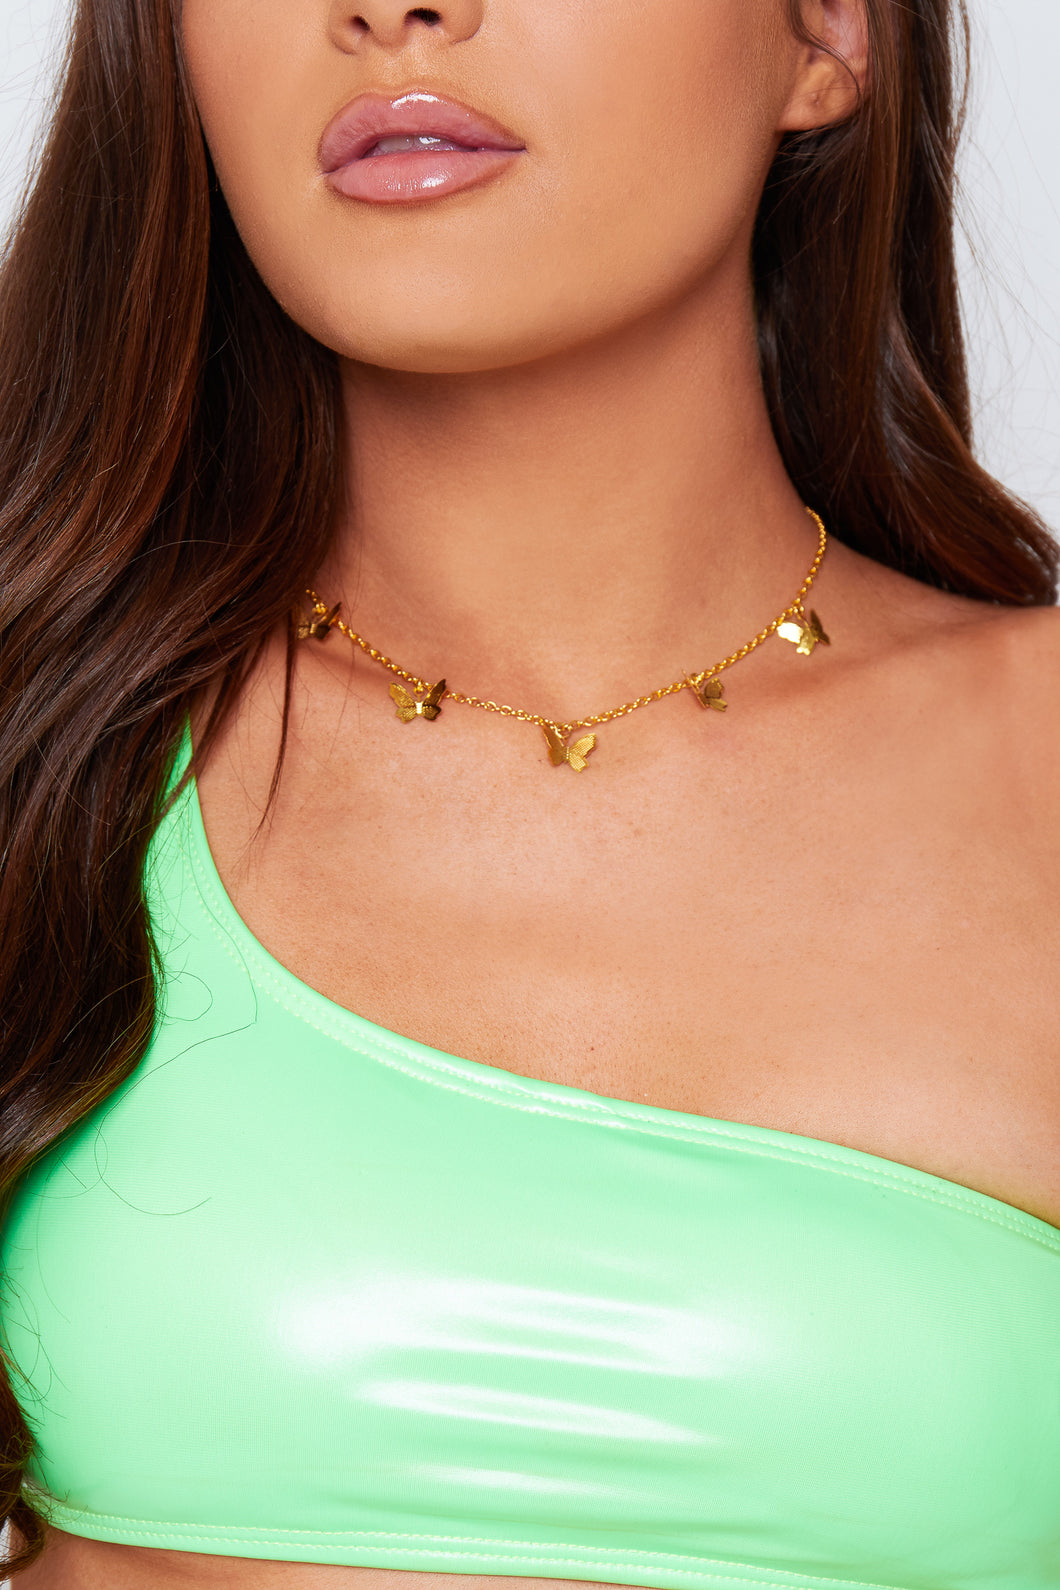 Butterfly necklace in gold